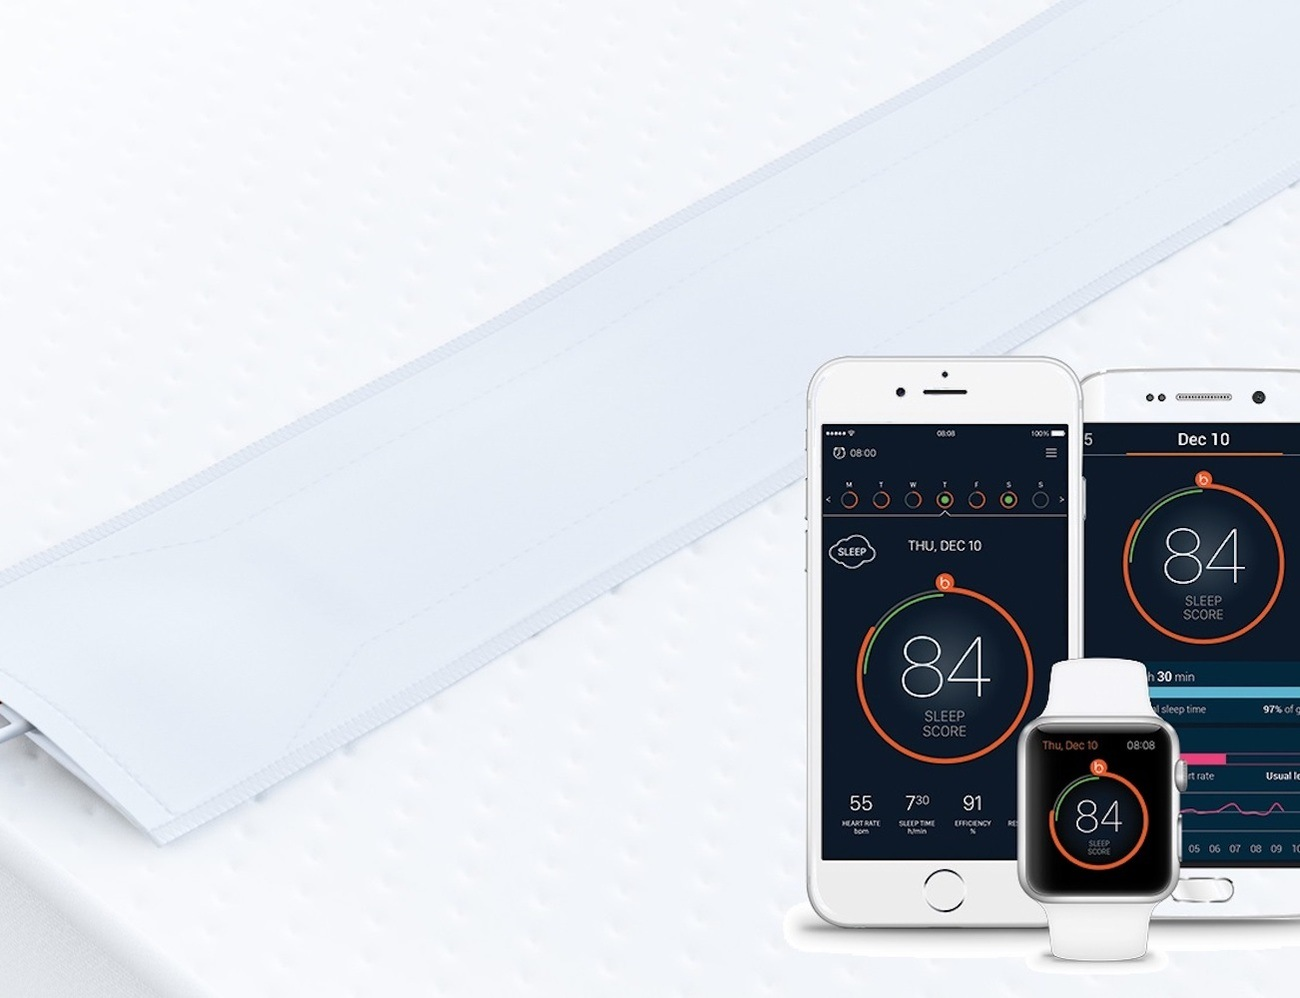 Beddit Sleep tracking monitor